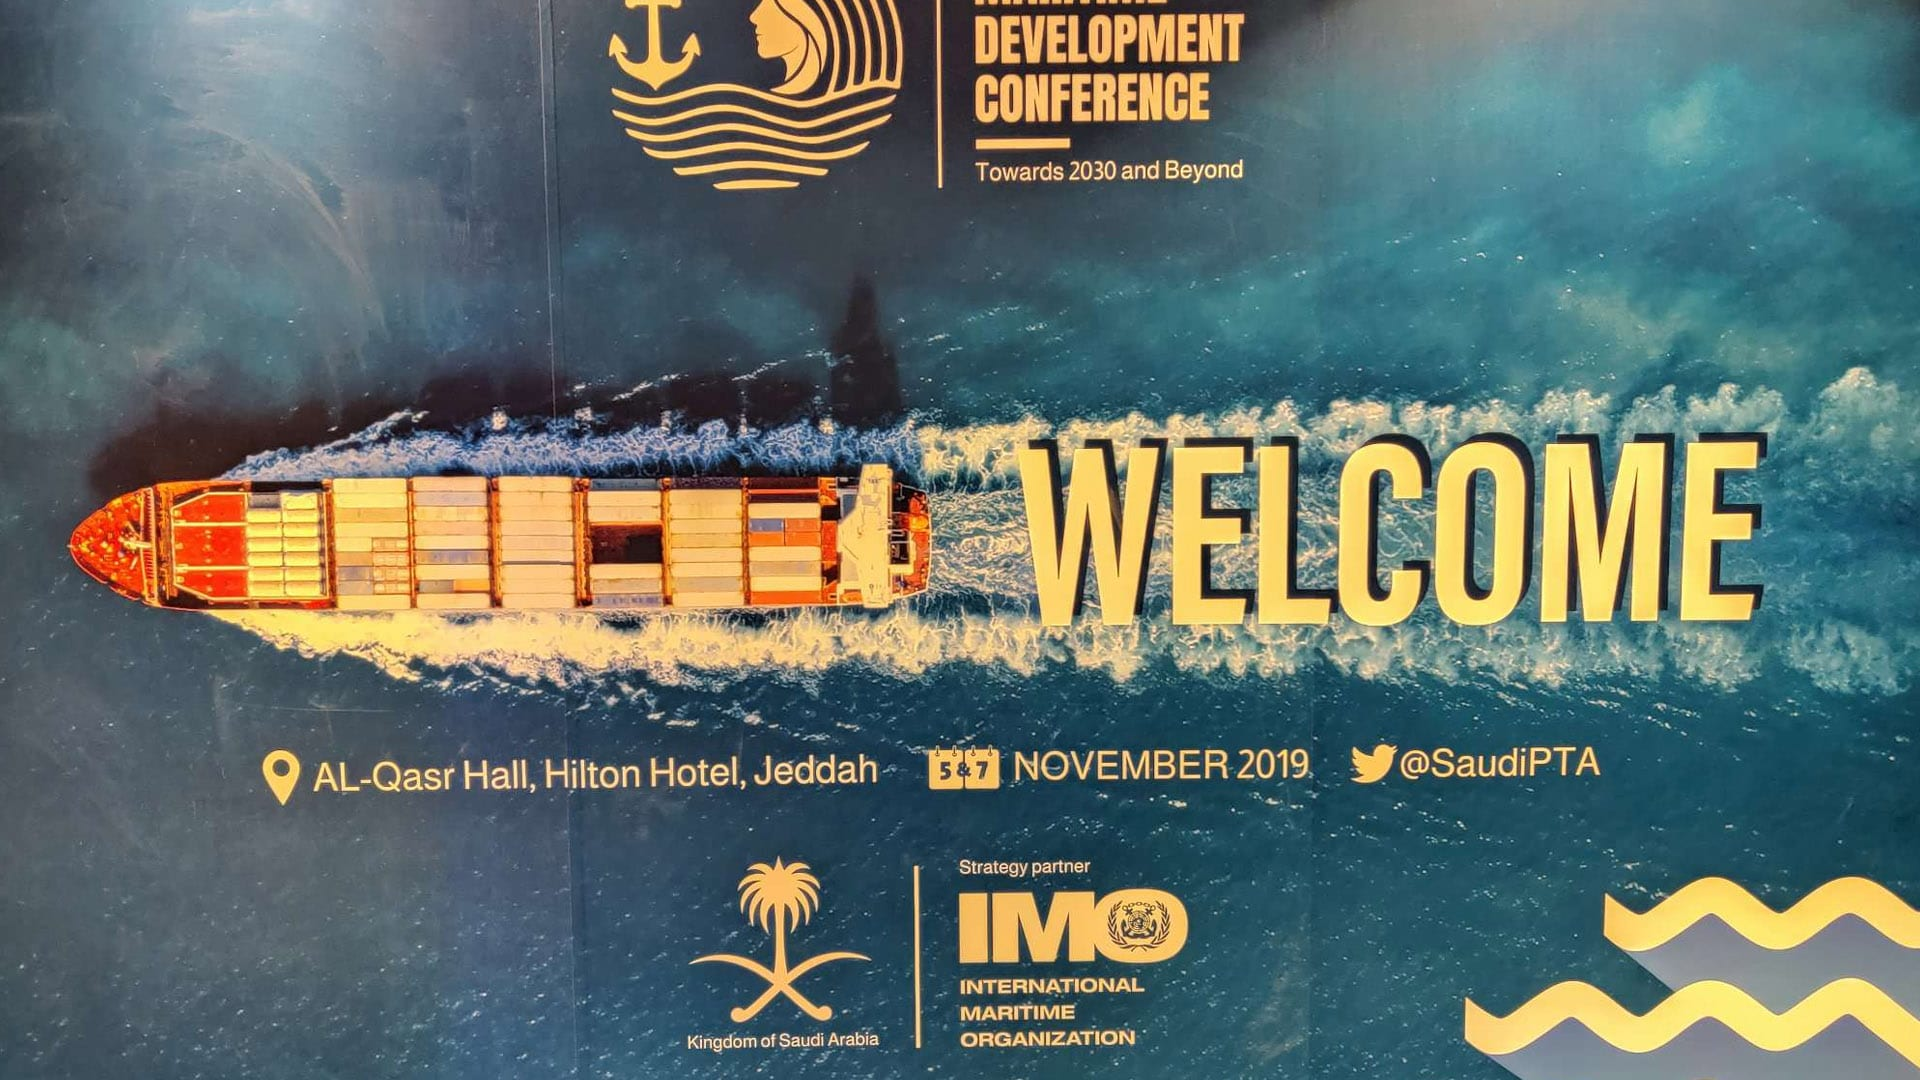 Jeddah: Sustainable Marine Development Towards 2030 and Beyond